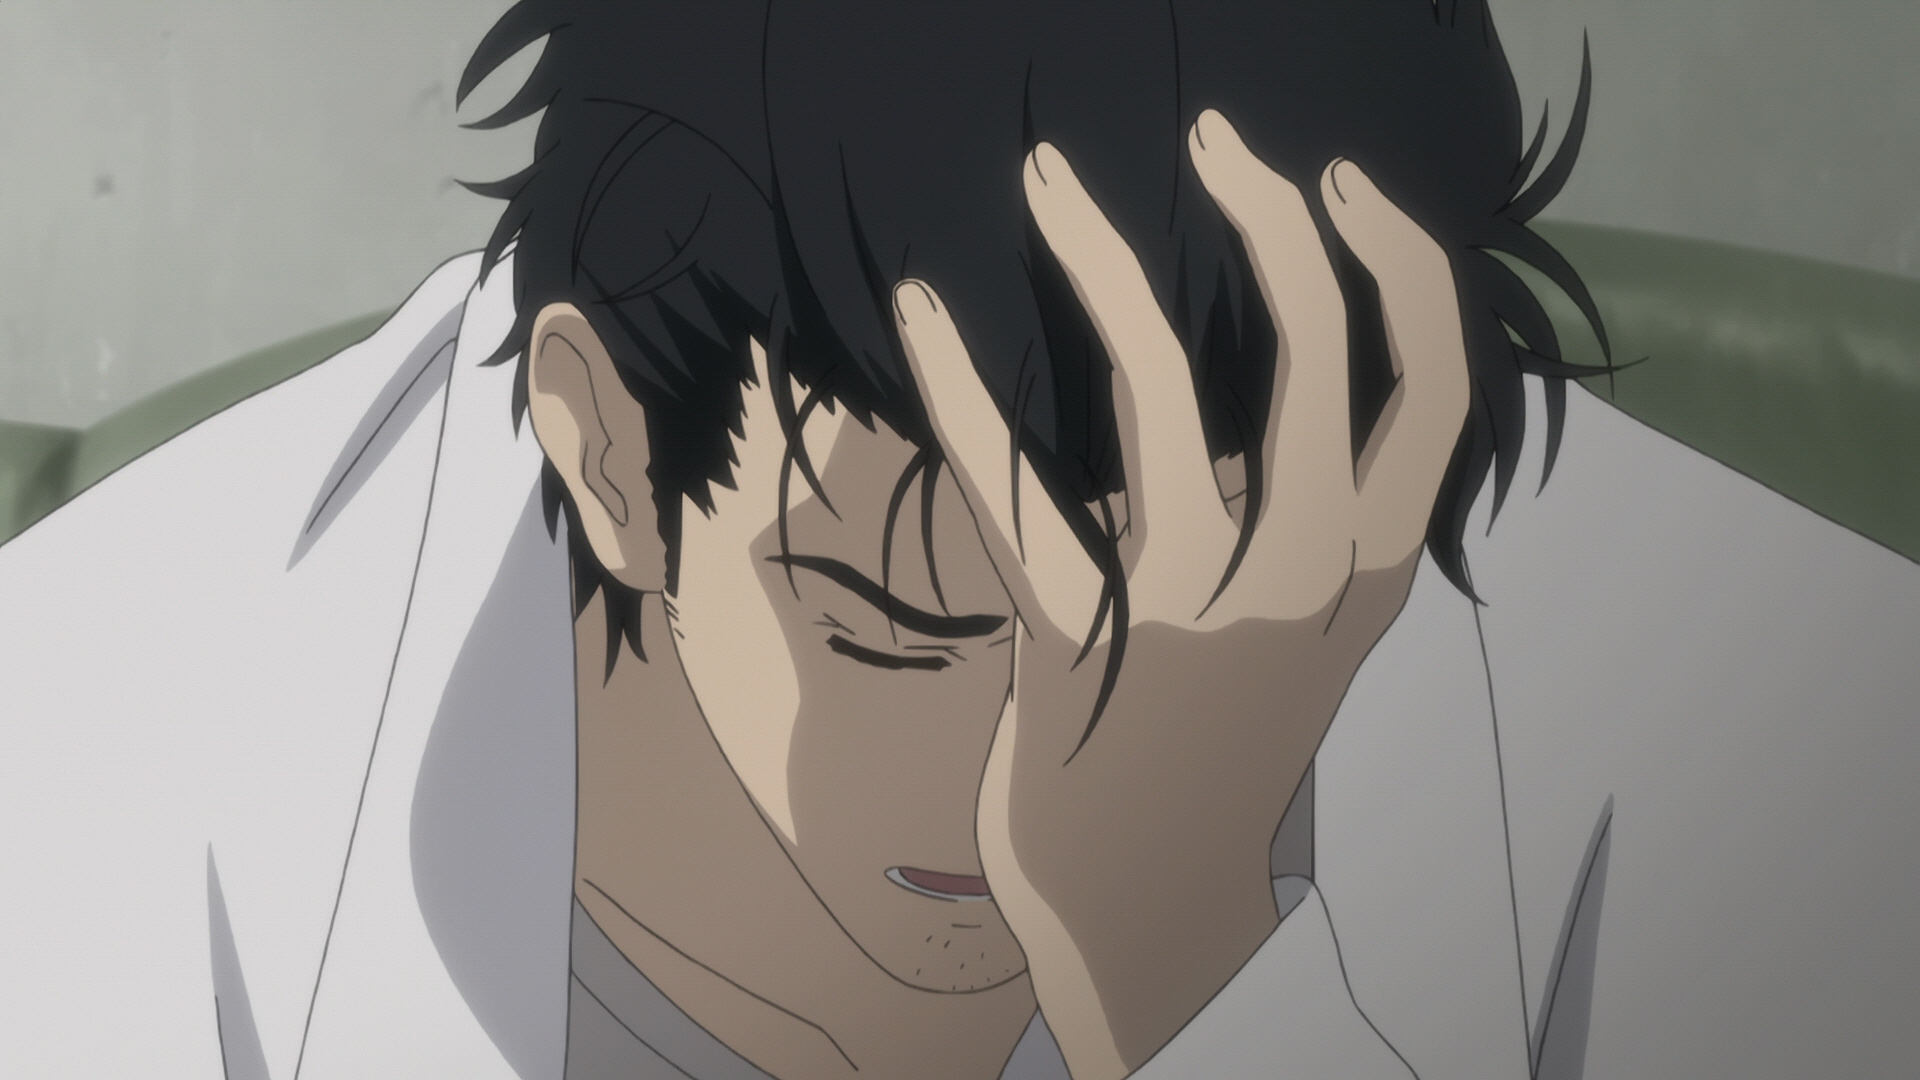 Steins Gate Episode 11 Dogma in Event Horizon 19